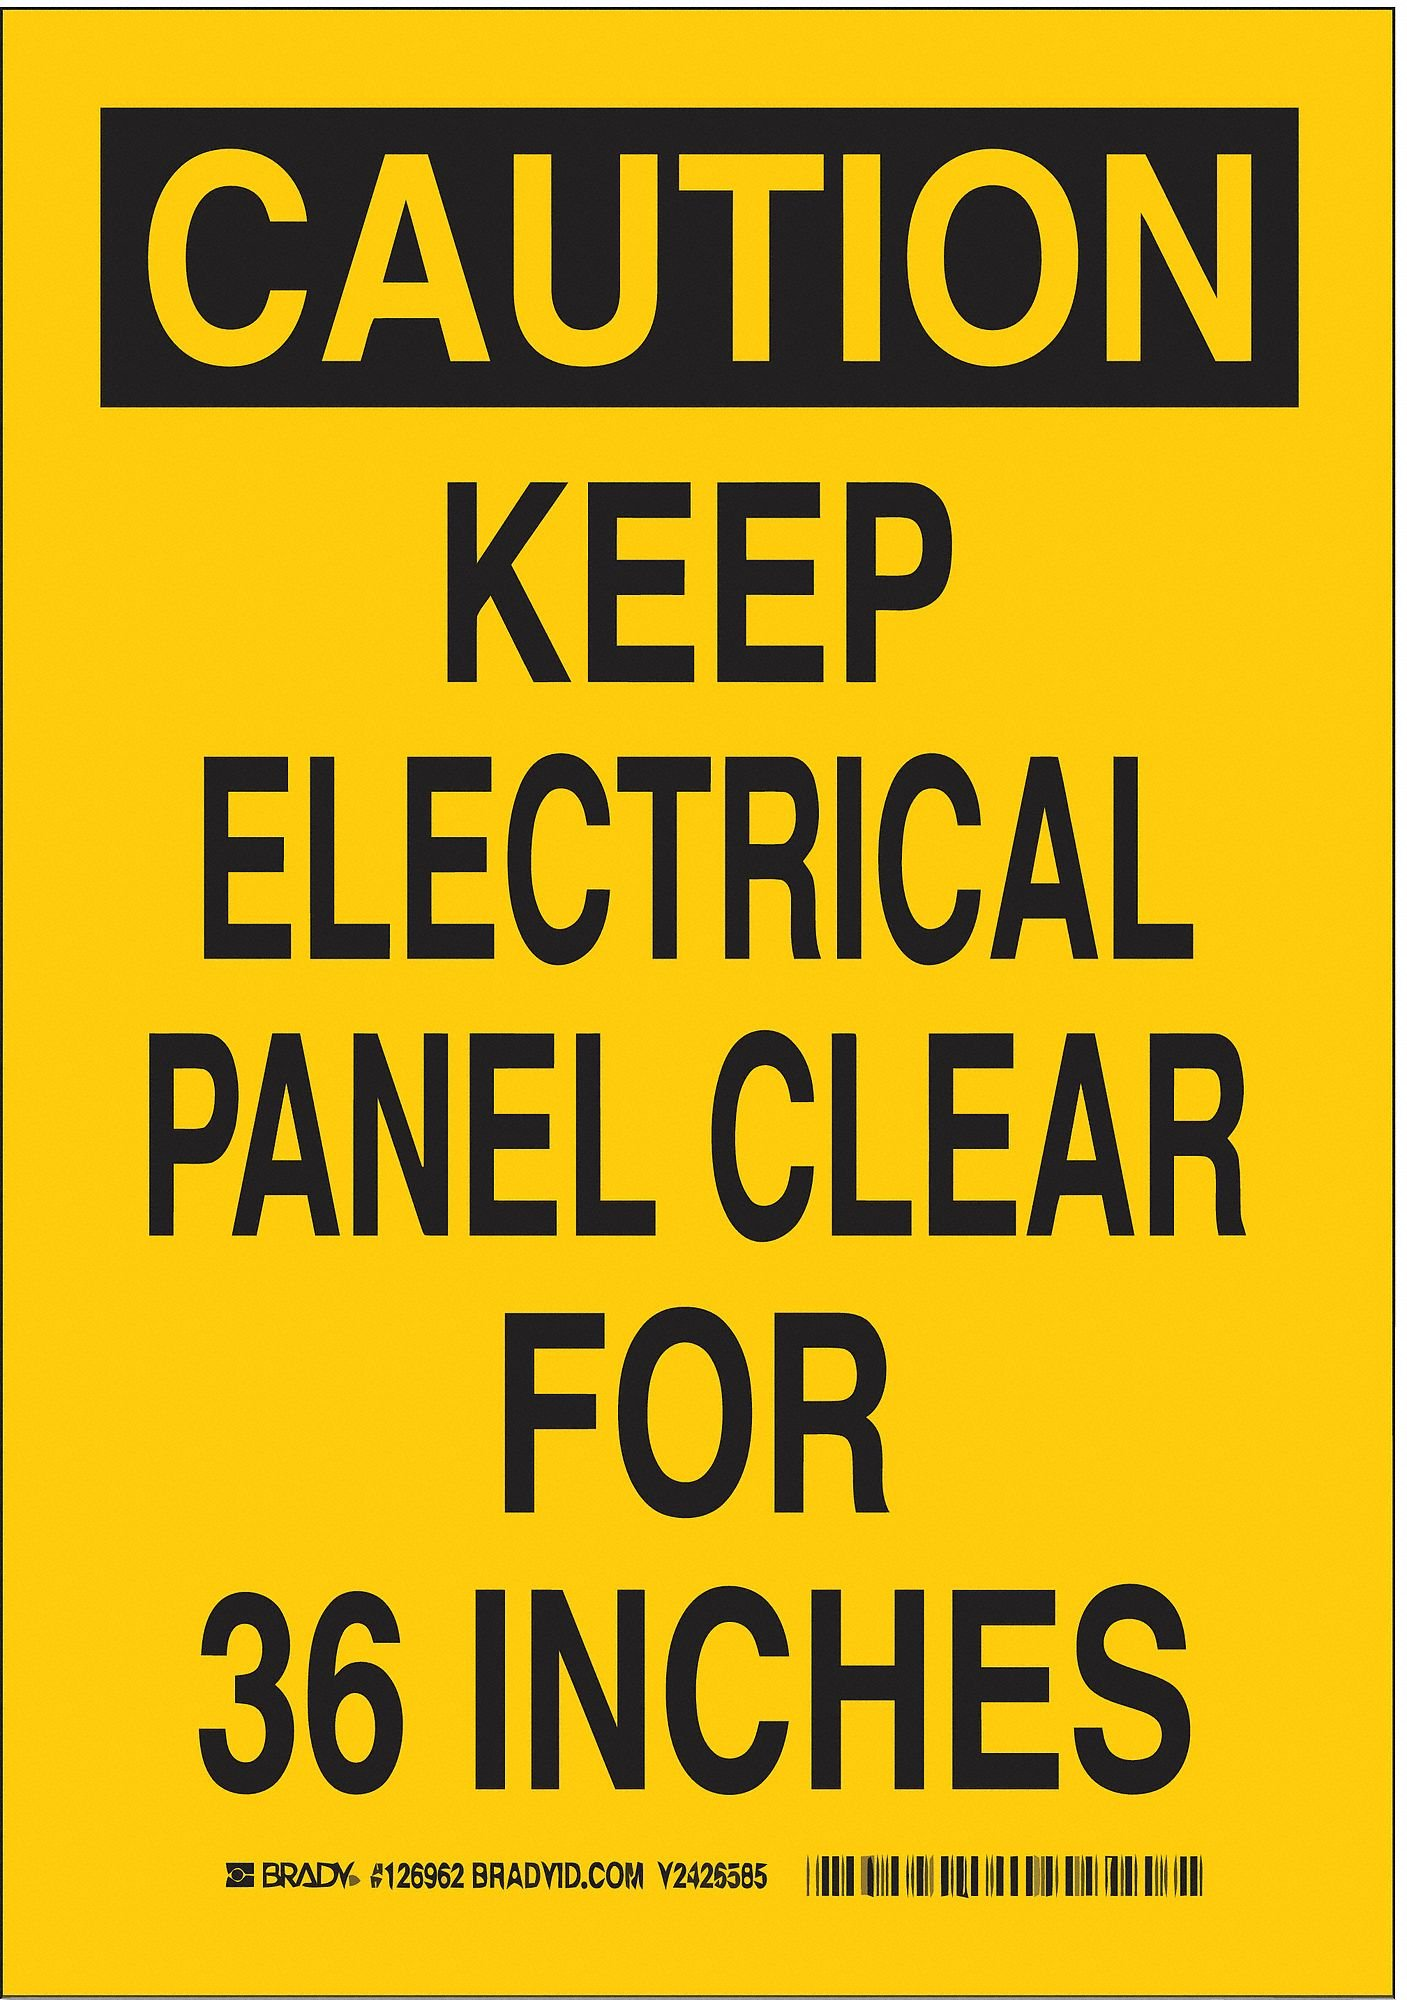 """Brady 126962 Electrical Hazard Sign, Legend""""Keep Electrical Panel Clear for 36 Inches"""", 10"""" Height, 7"""" Weight, Black on Yellow"""